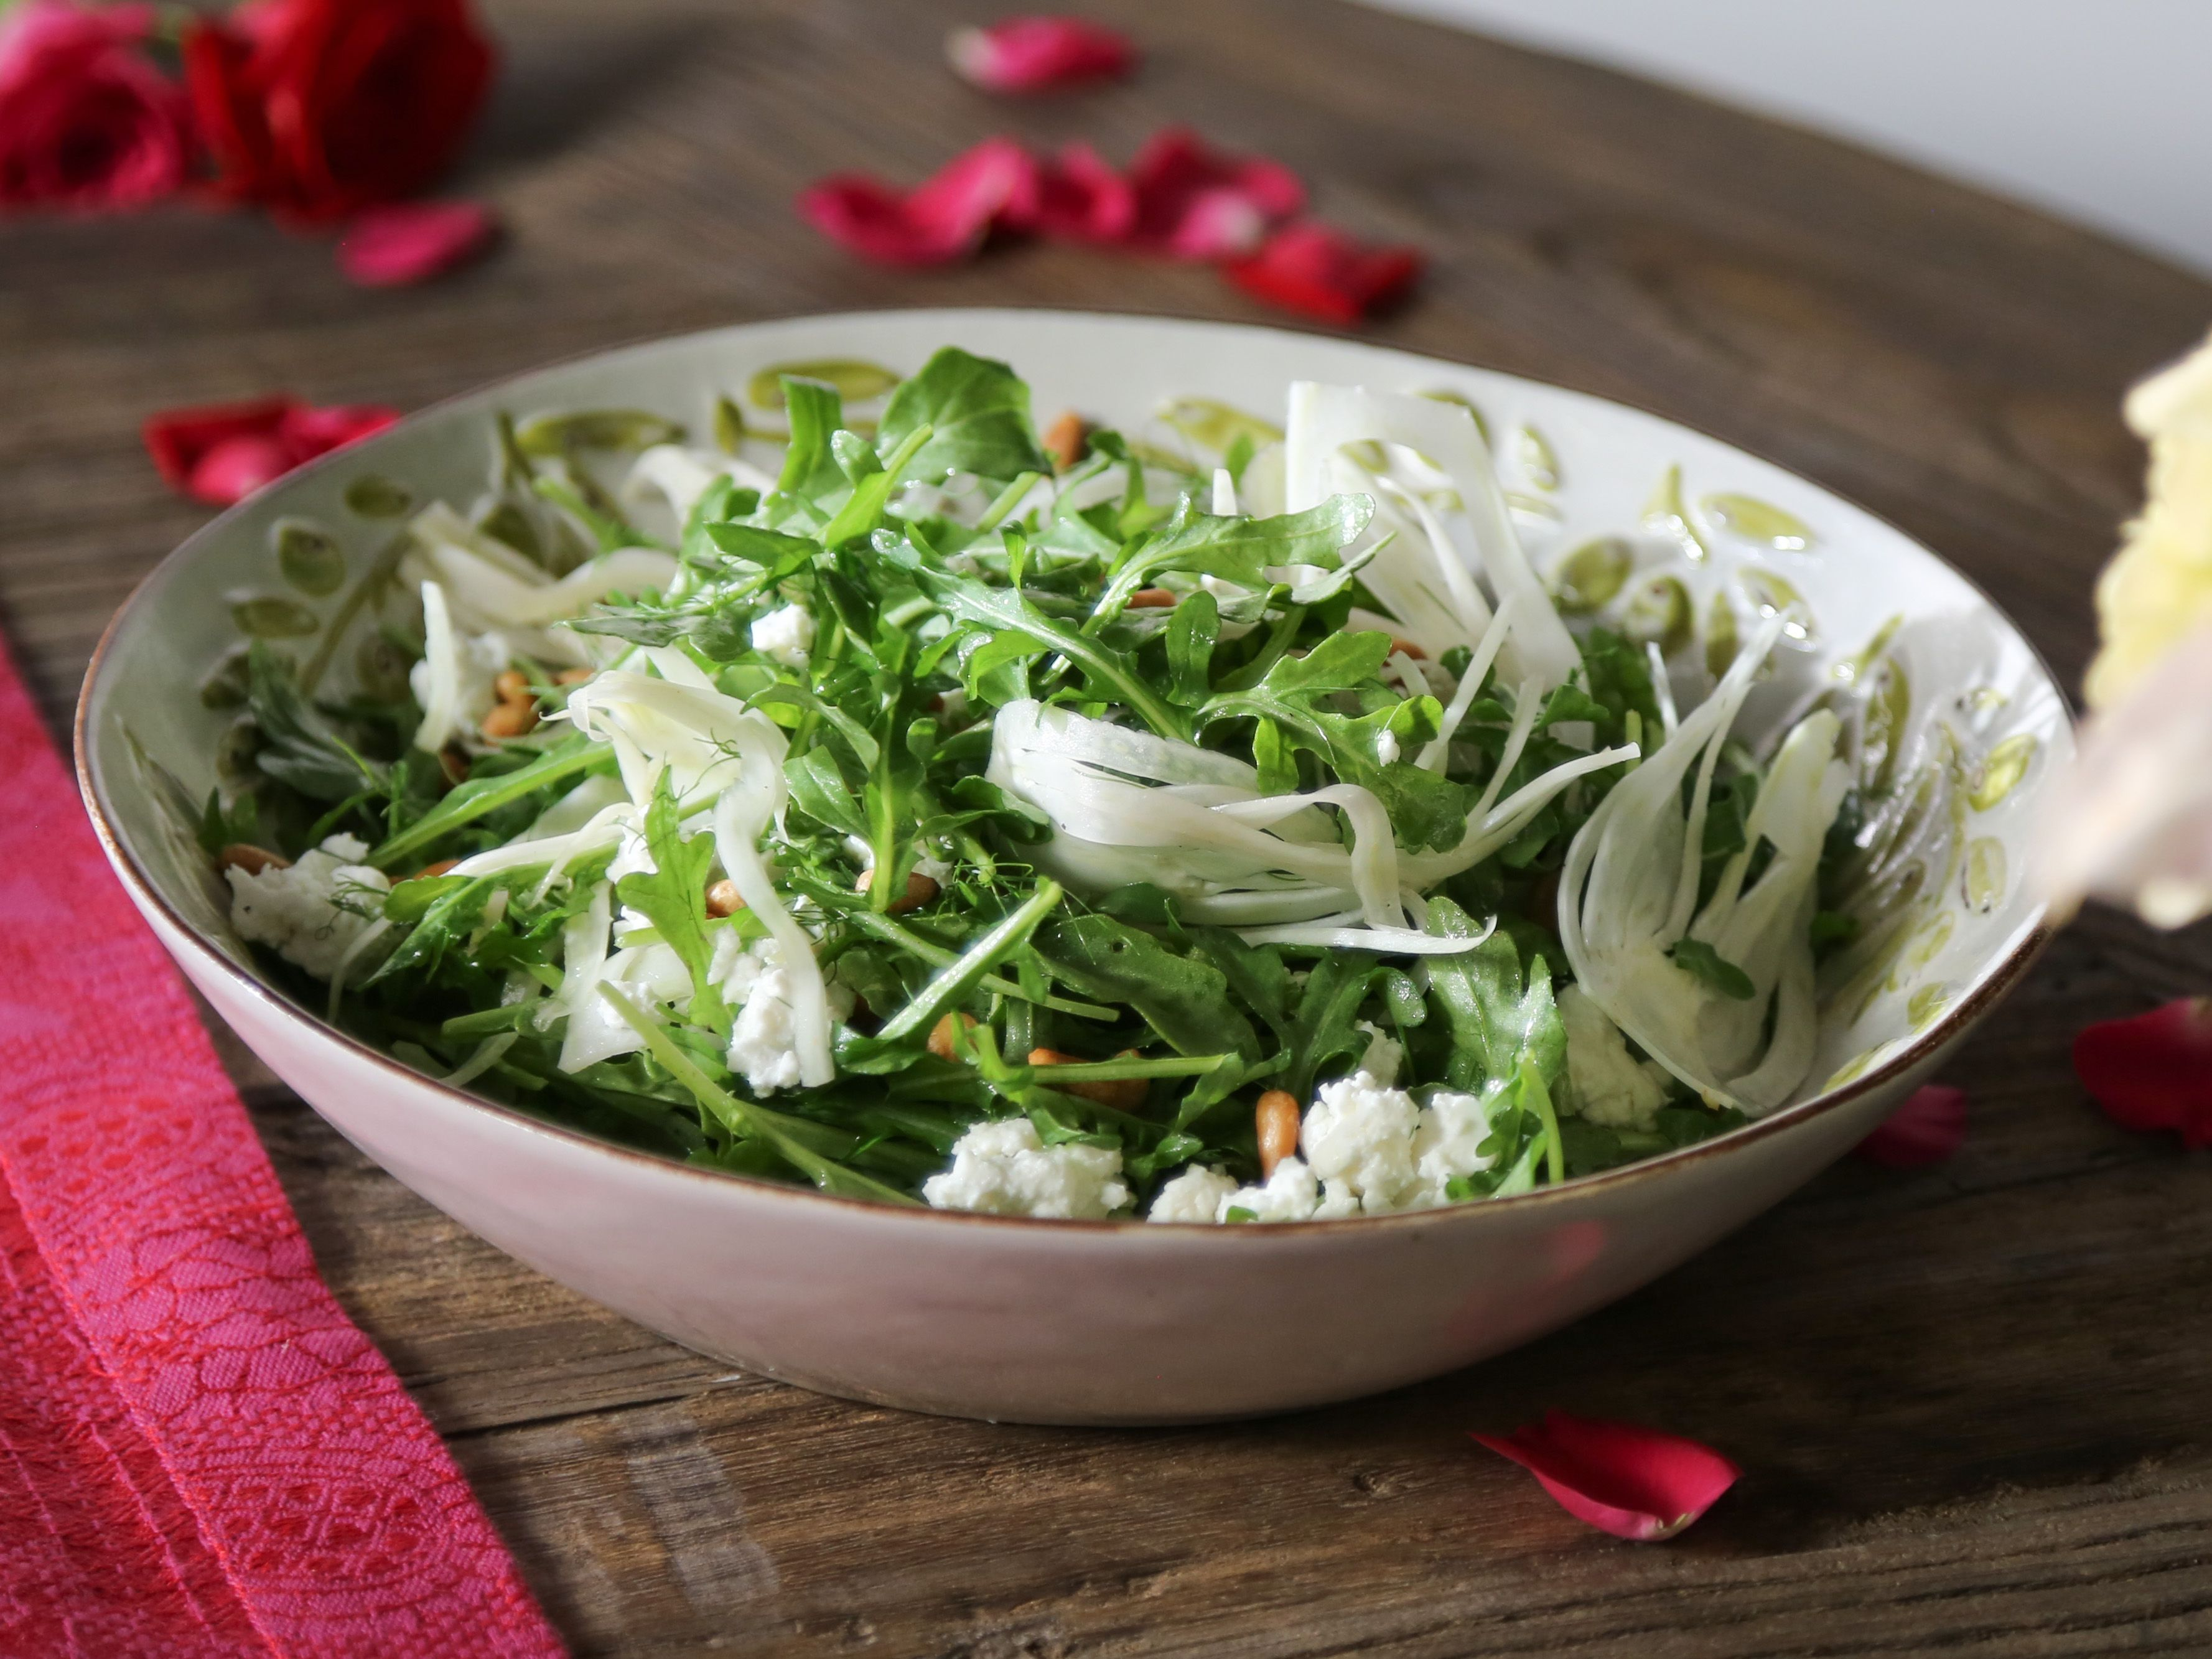 Fennel Salad With Goat Cheese And Pine Nuts Recipe Cooking Fennel Food Network Recipes Fennel Salad